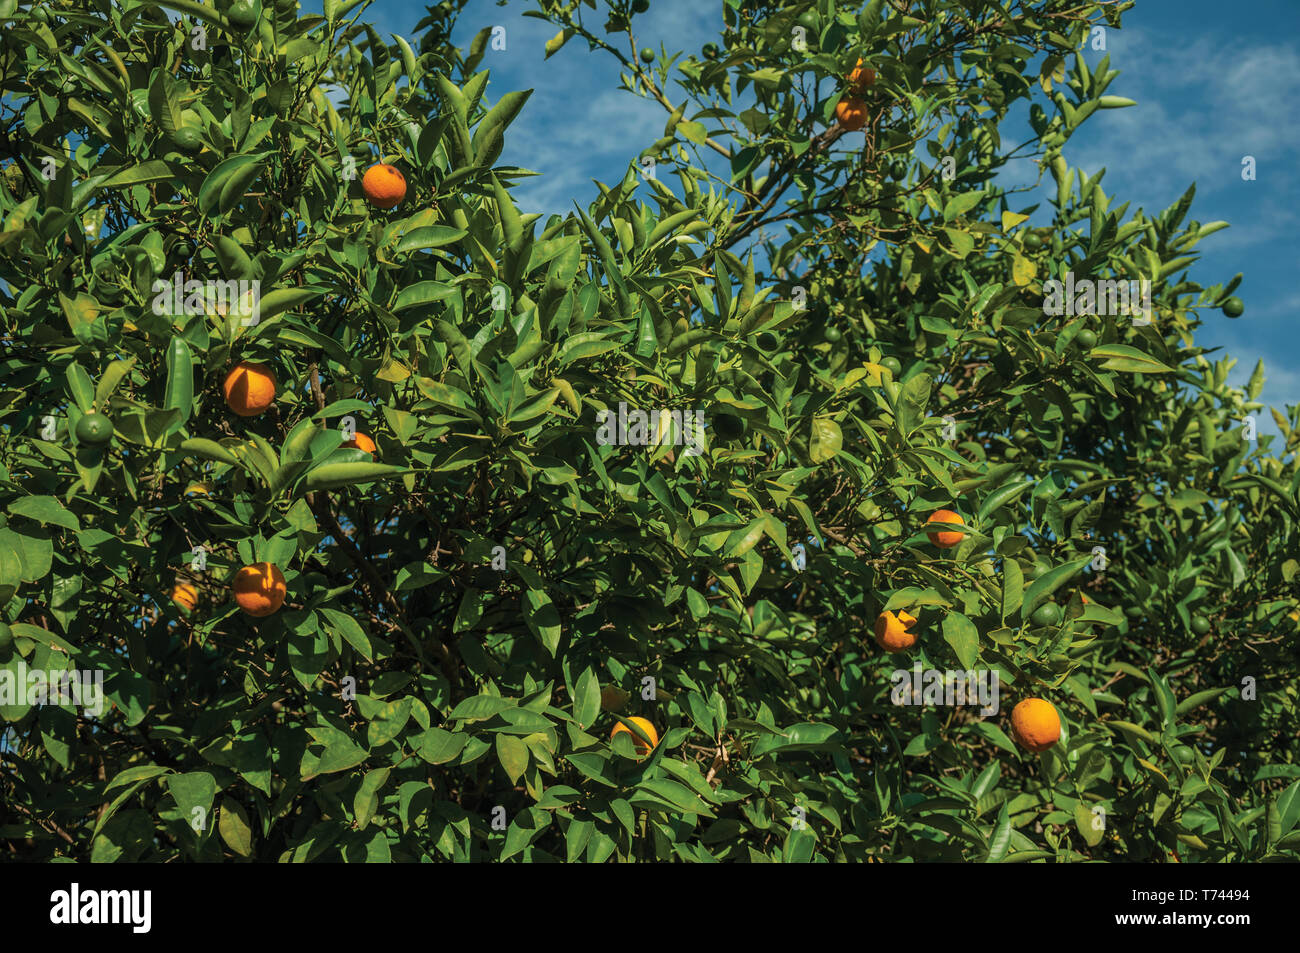 Close-up of ripe oranges stuck to leafy branches in a sunny day, on a small farm near Elvas. A gracious city on the easternmost frontier of Portugal. Stock Photo